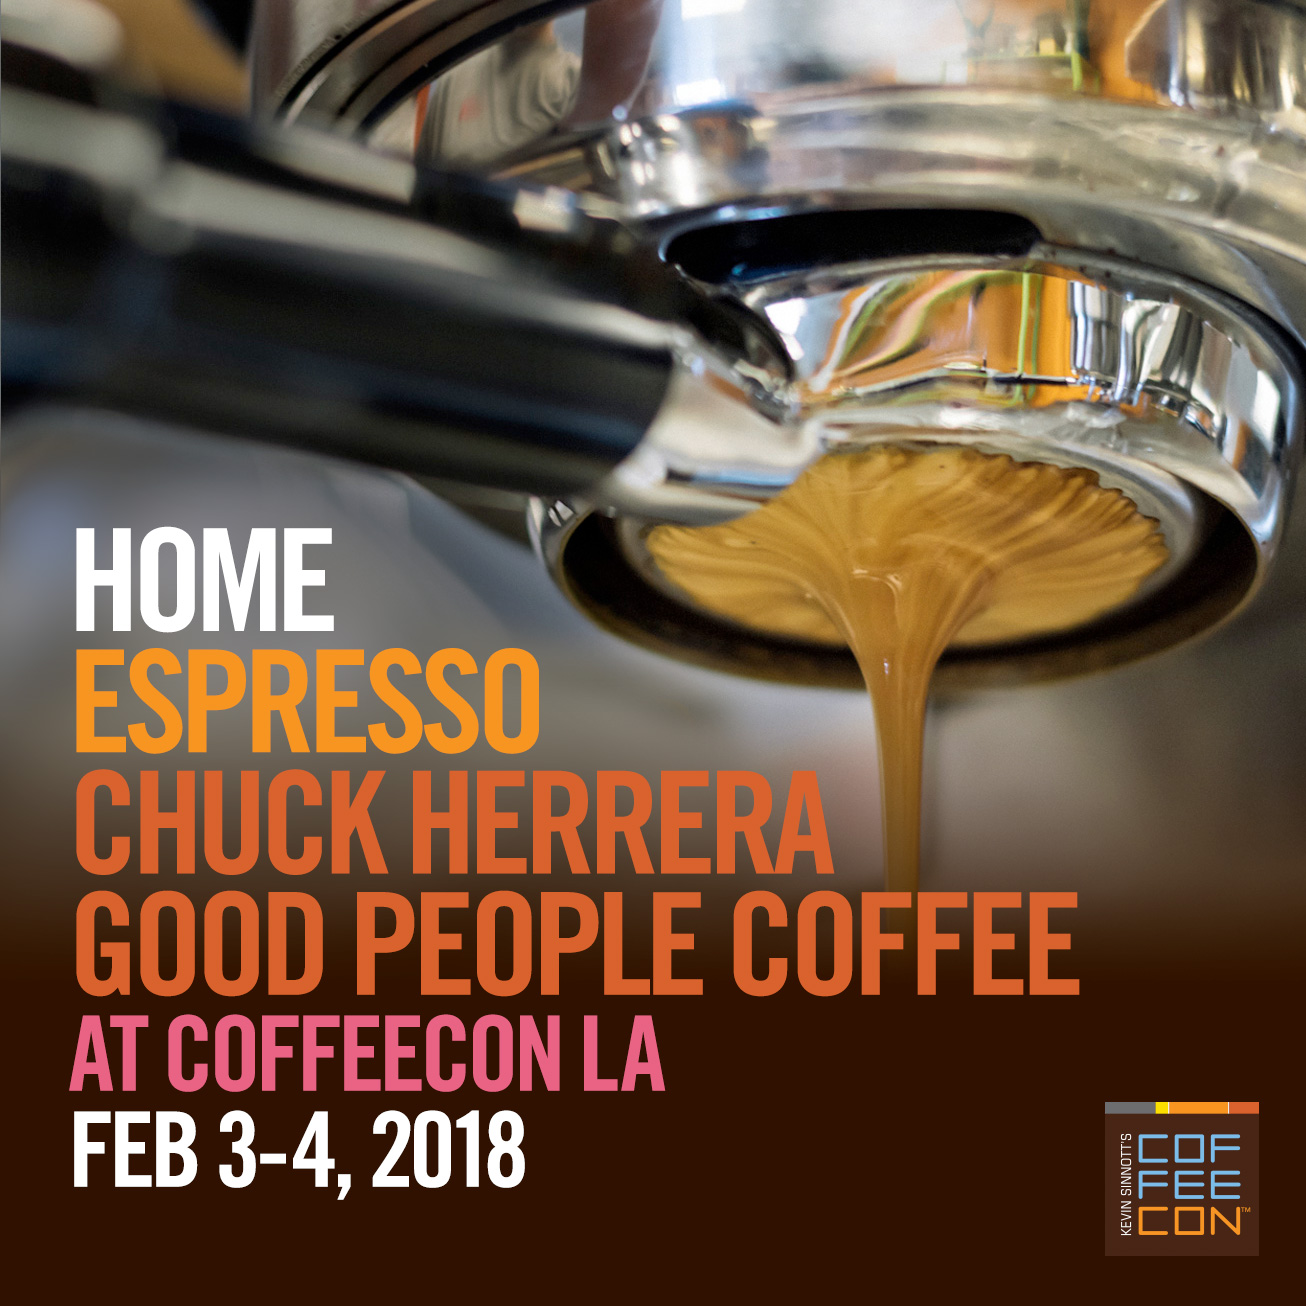 Home Espresso at CoffeeConLA